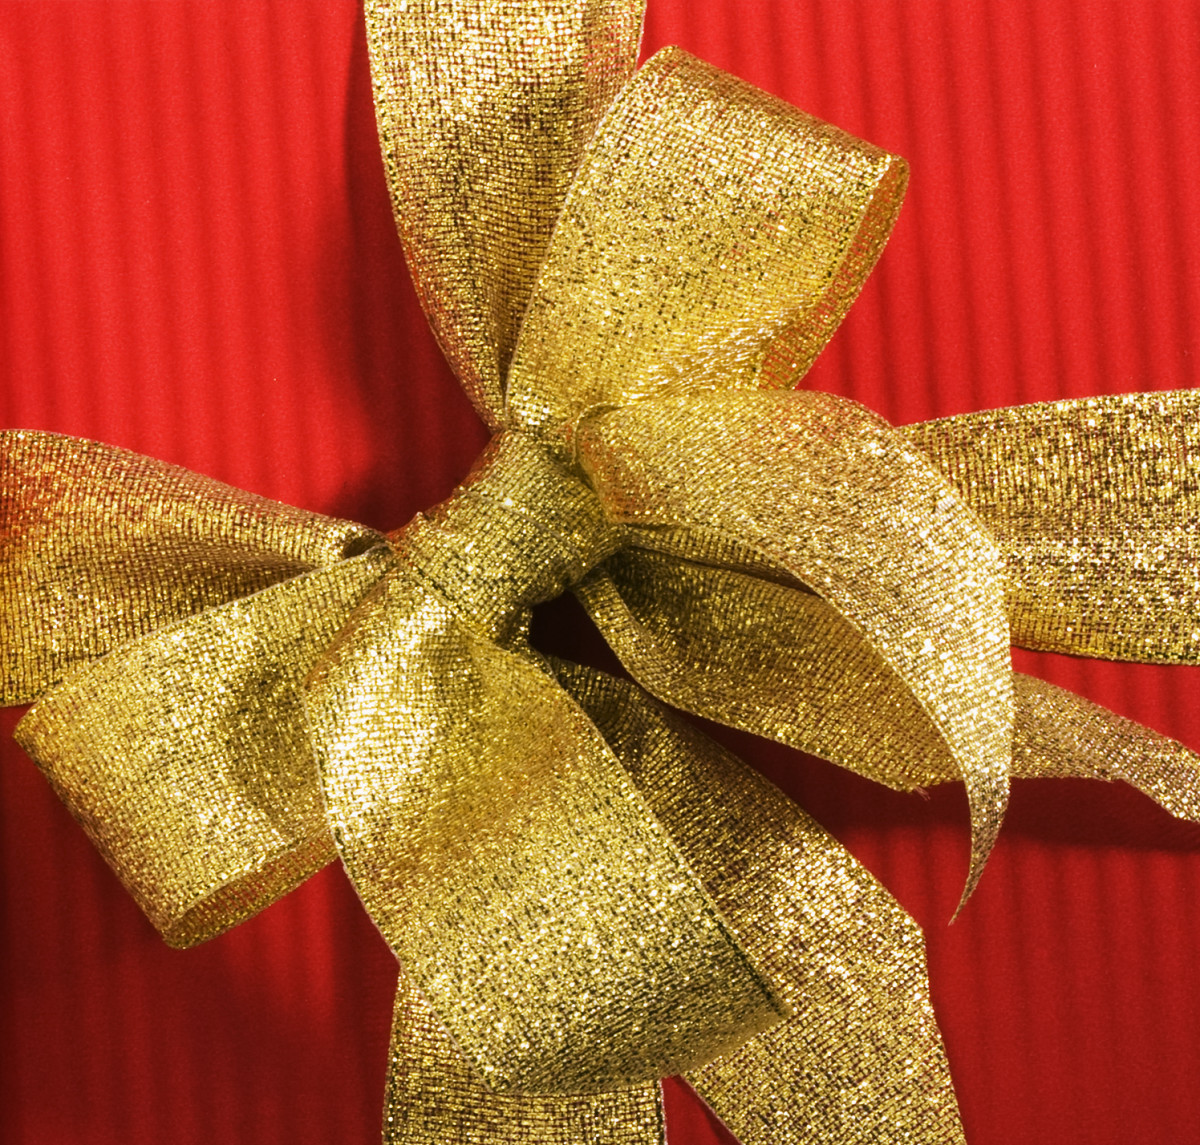 Since you may not know your coworker as well as you know your best friend, try to choose a gift that anyone would appreciate, regardless of their lifestyle.